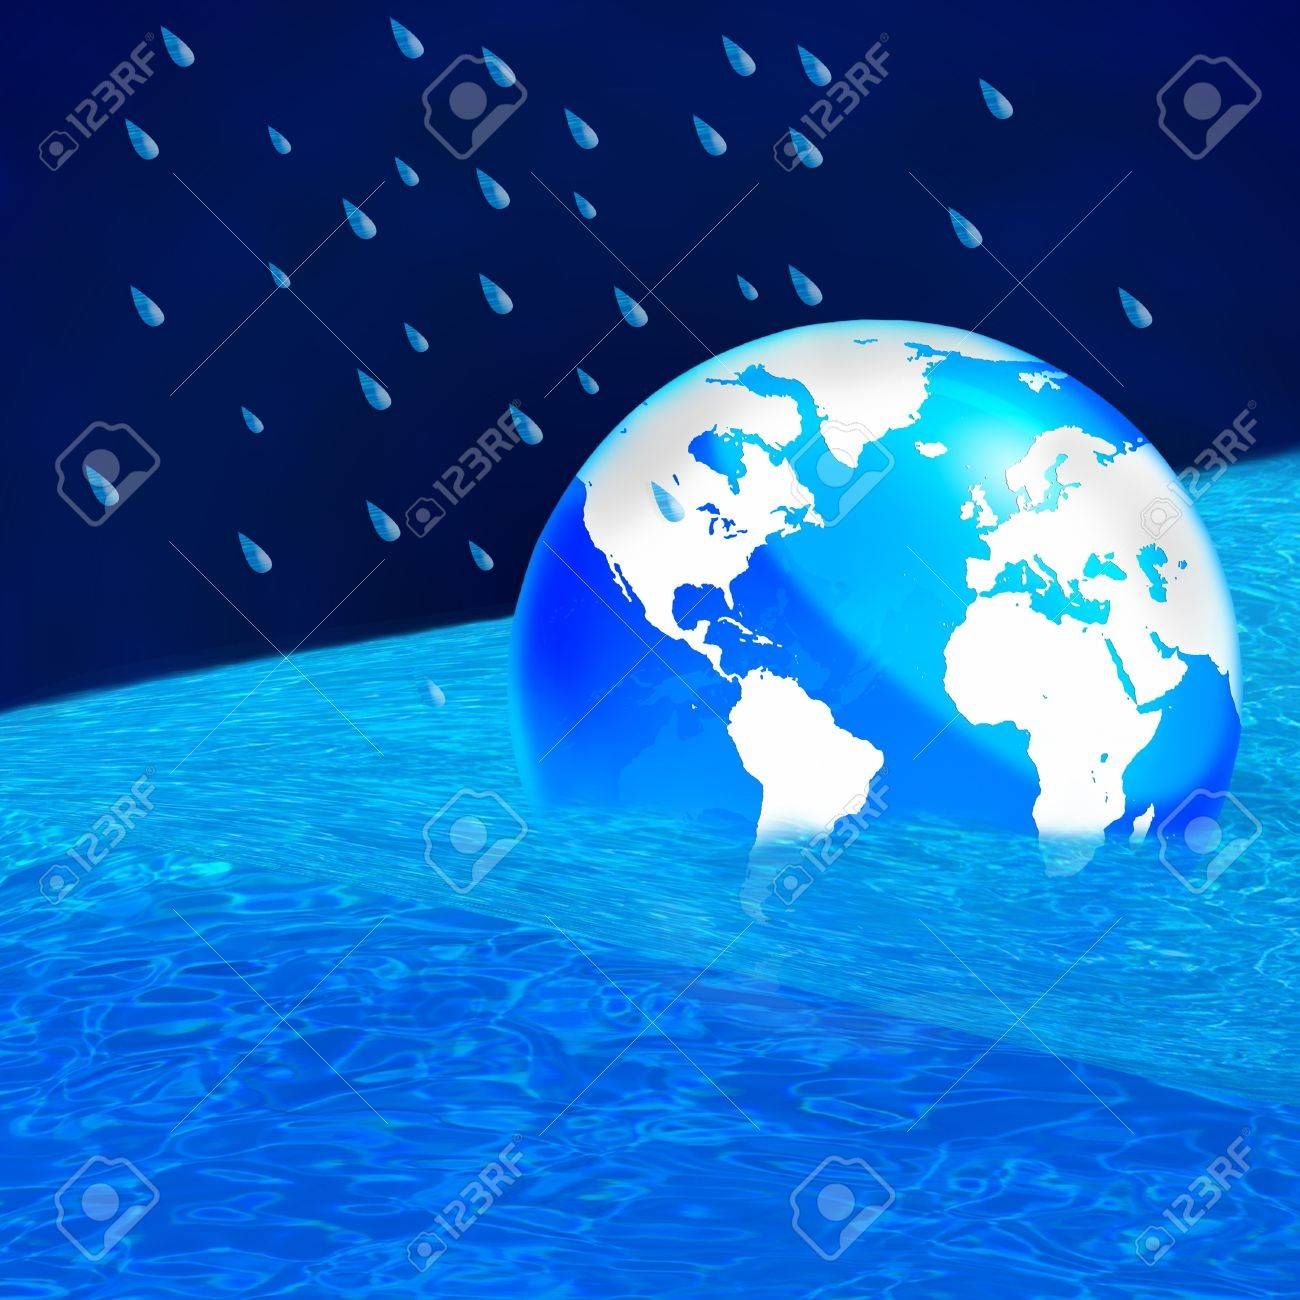 Save the world, The earth floating in a pool of water - this works great to denote a flood or to represent the melting of the polar ice caps. Stock Photo - 10930087